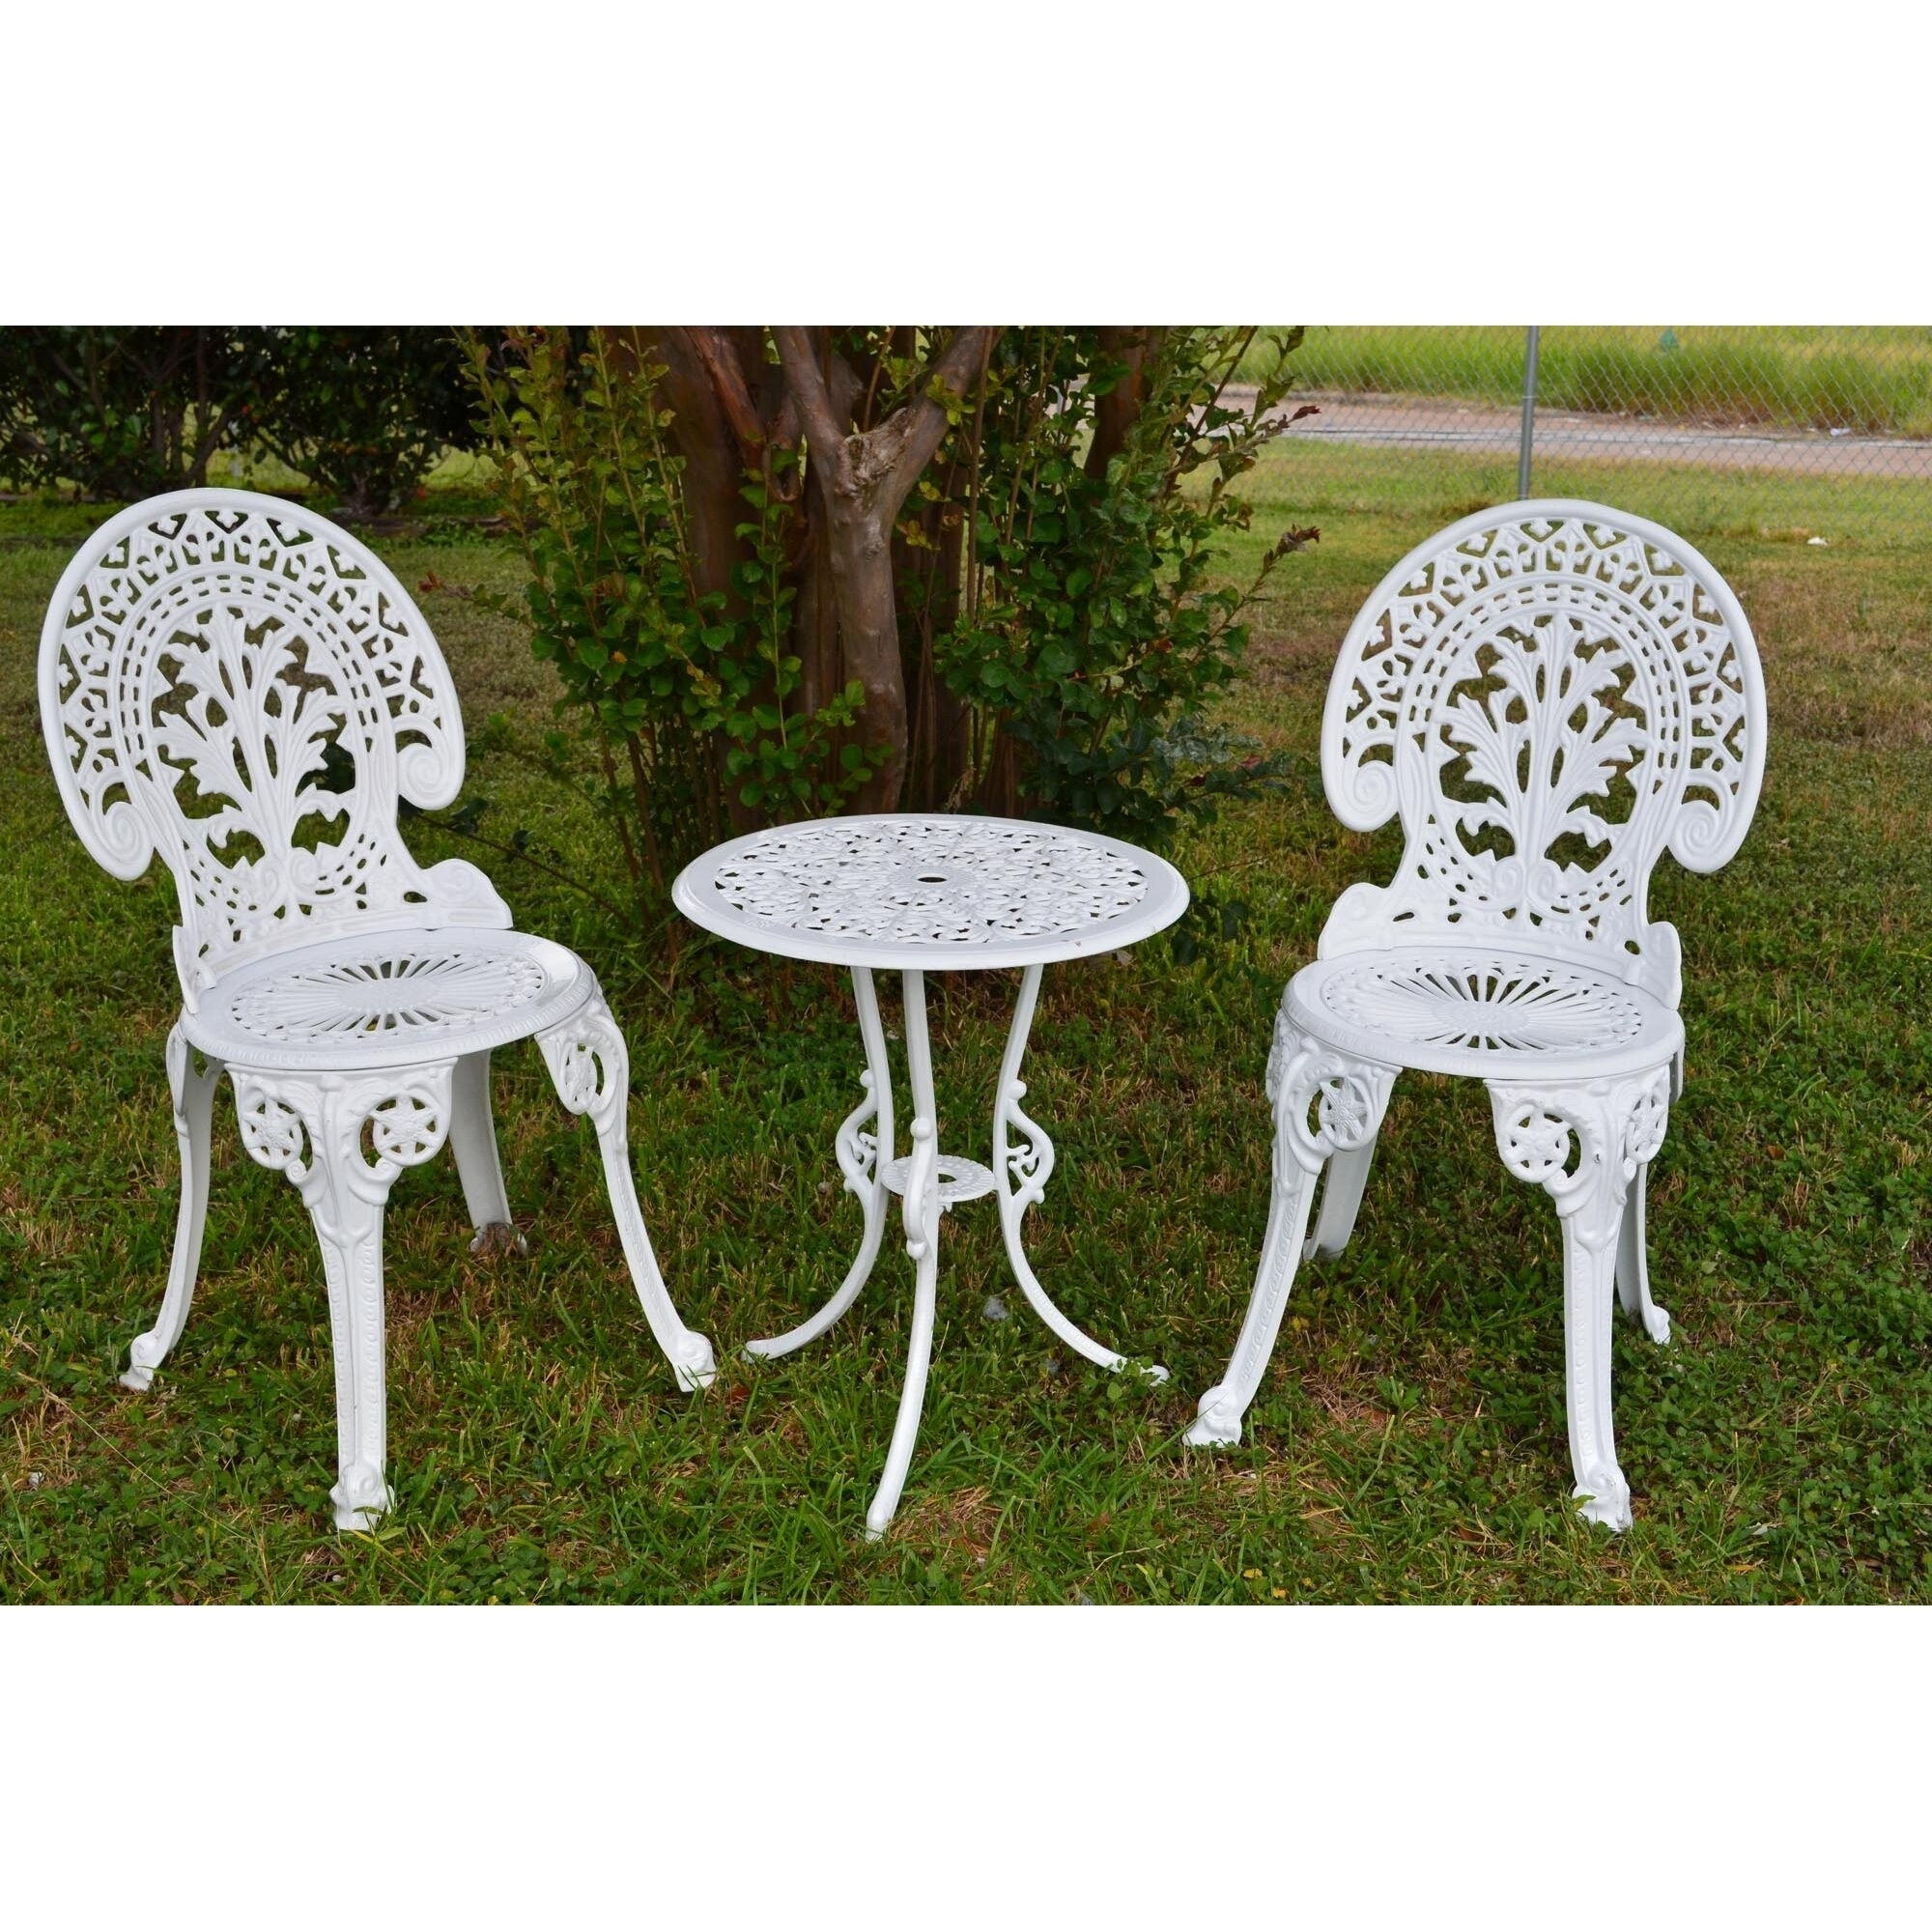 Cast Iron Patio Furniture Sets - Ideas on Foter